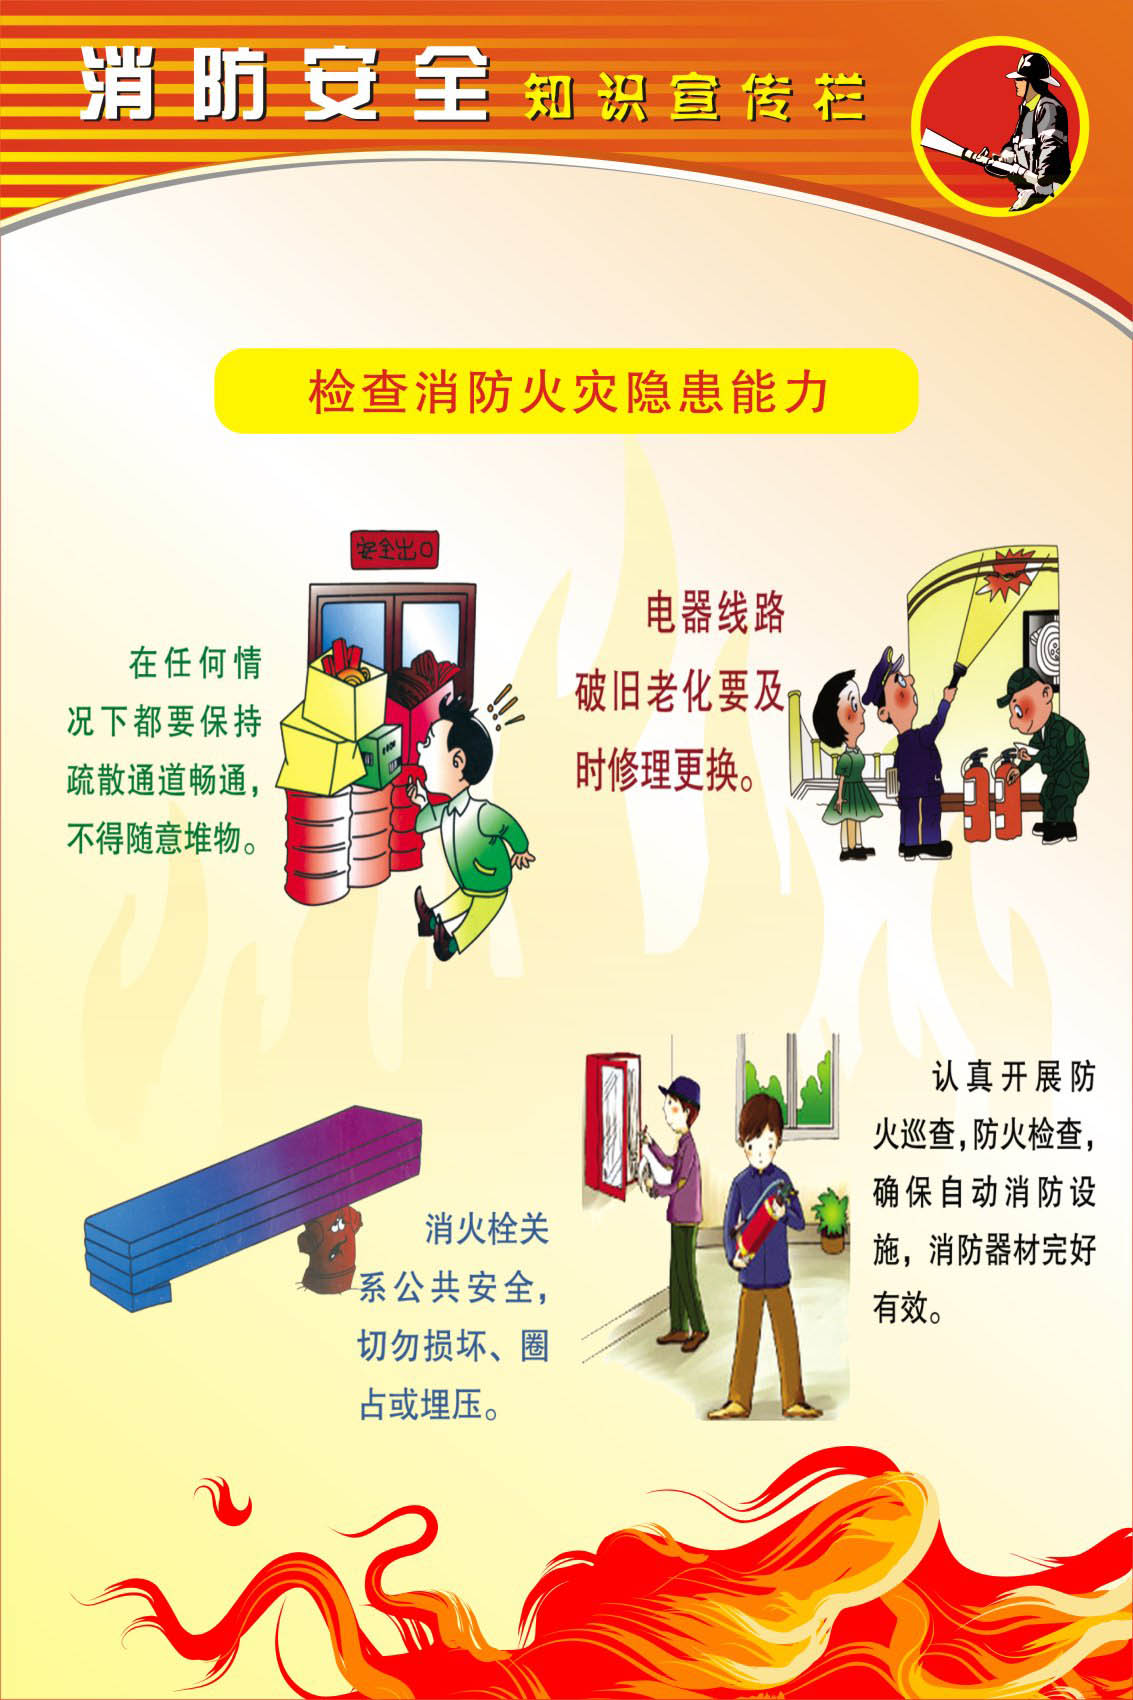 733 poster printing inkjet 955 fire safety knowledge map (1) capacity 2 inspection of fire fire hazard